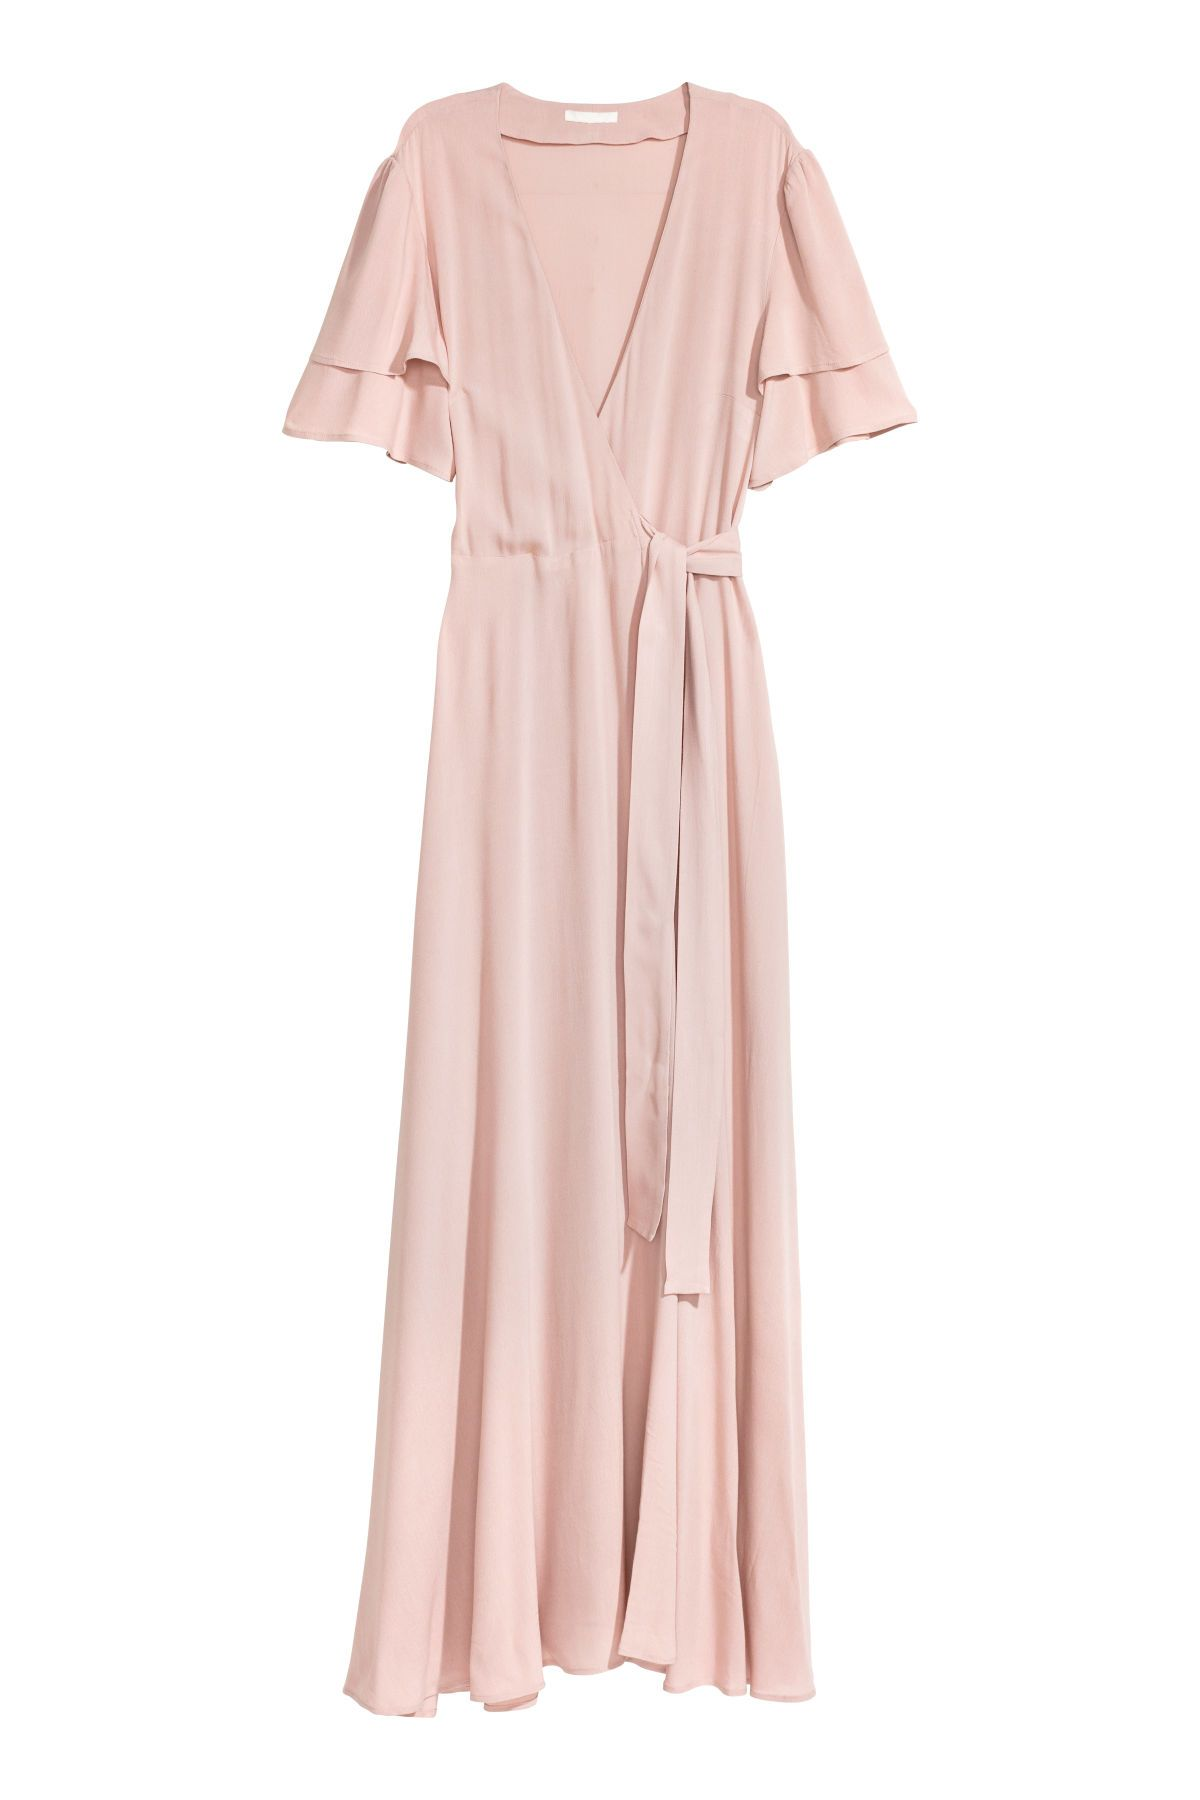 Powder pink long dress in woven fabric with a vneck wrapover